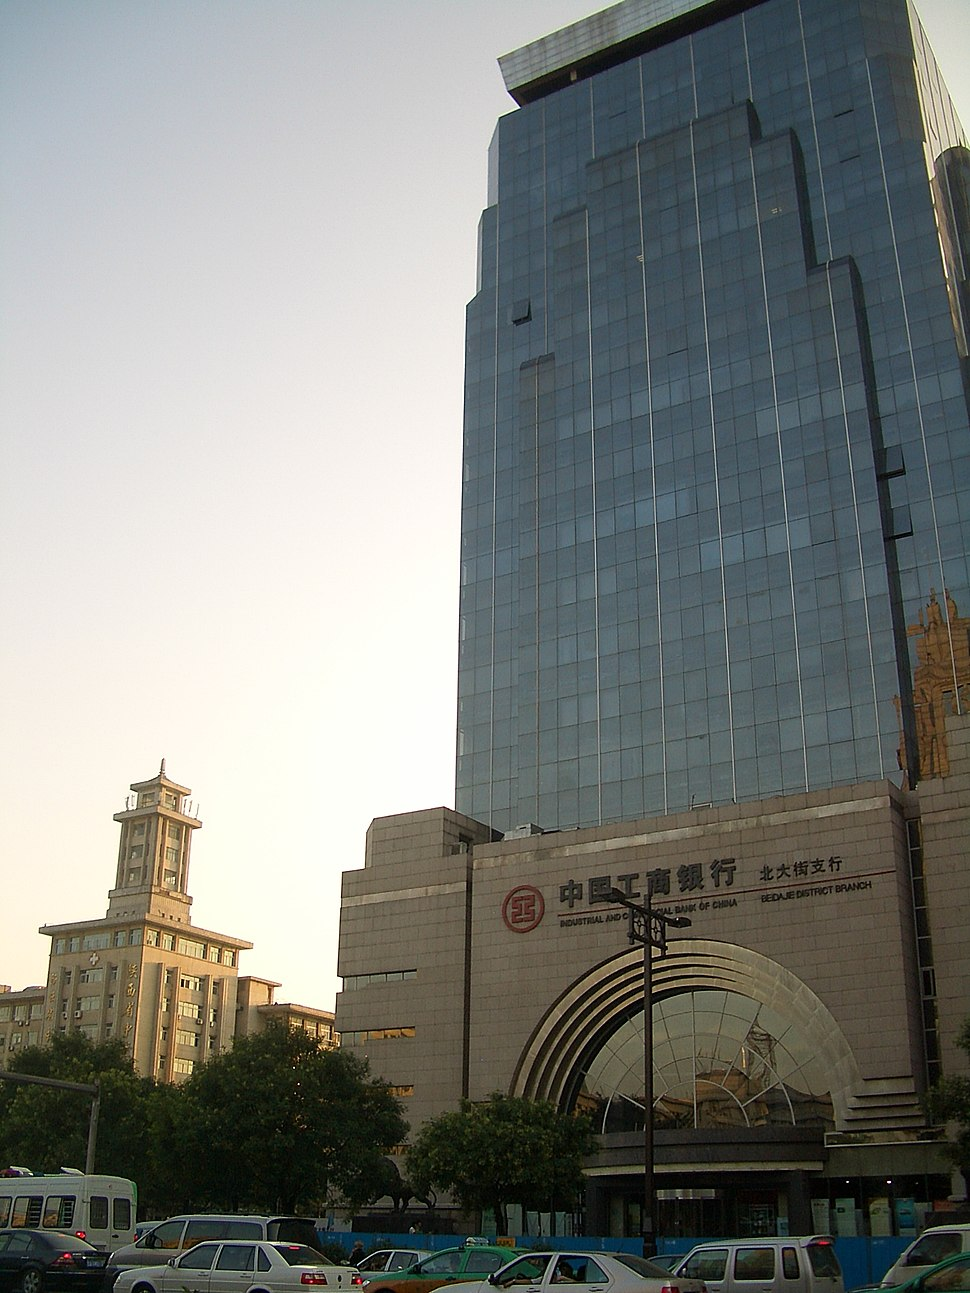 VM 5492 Xian - Industrial and Commercial Bank of China